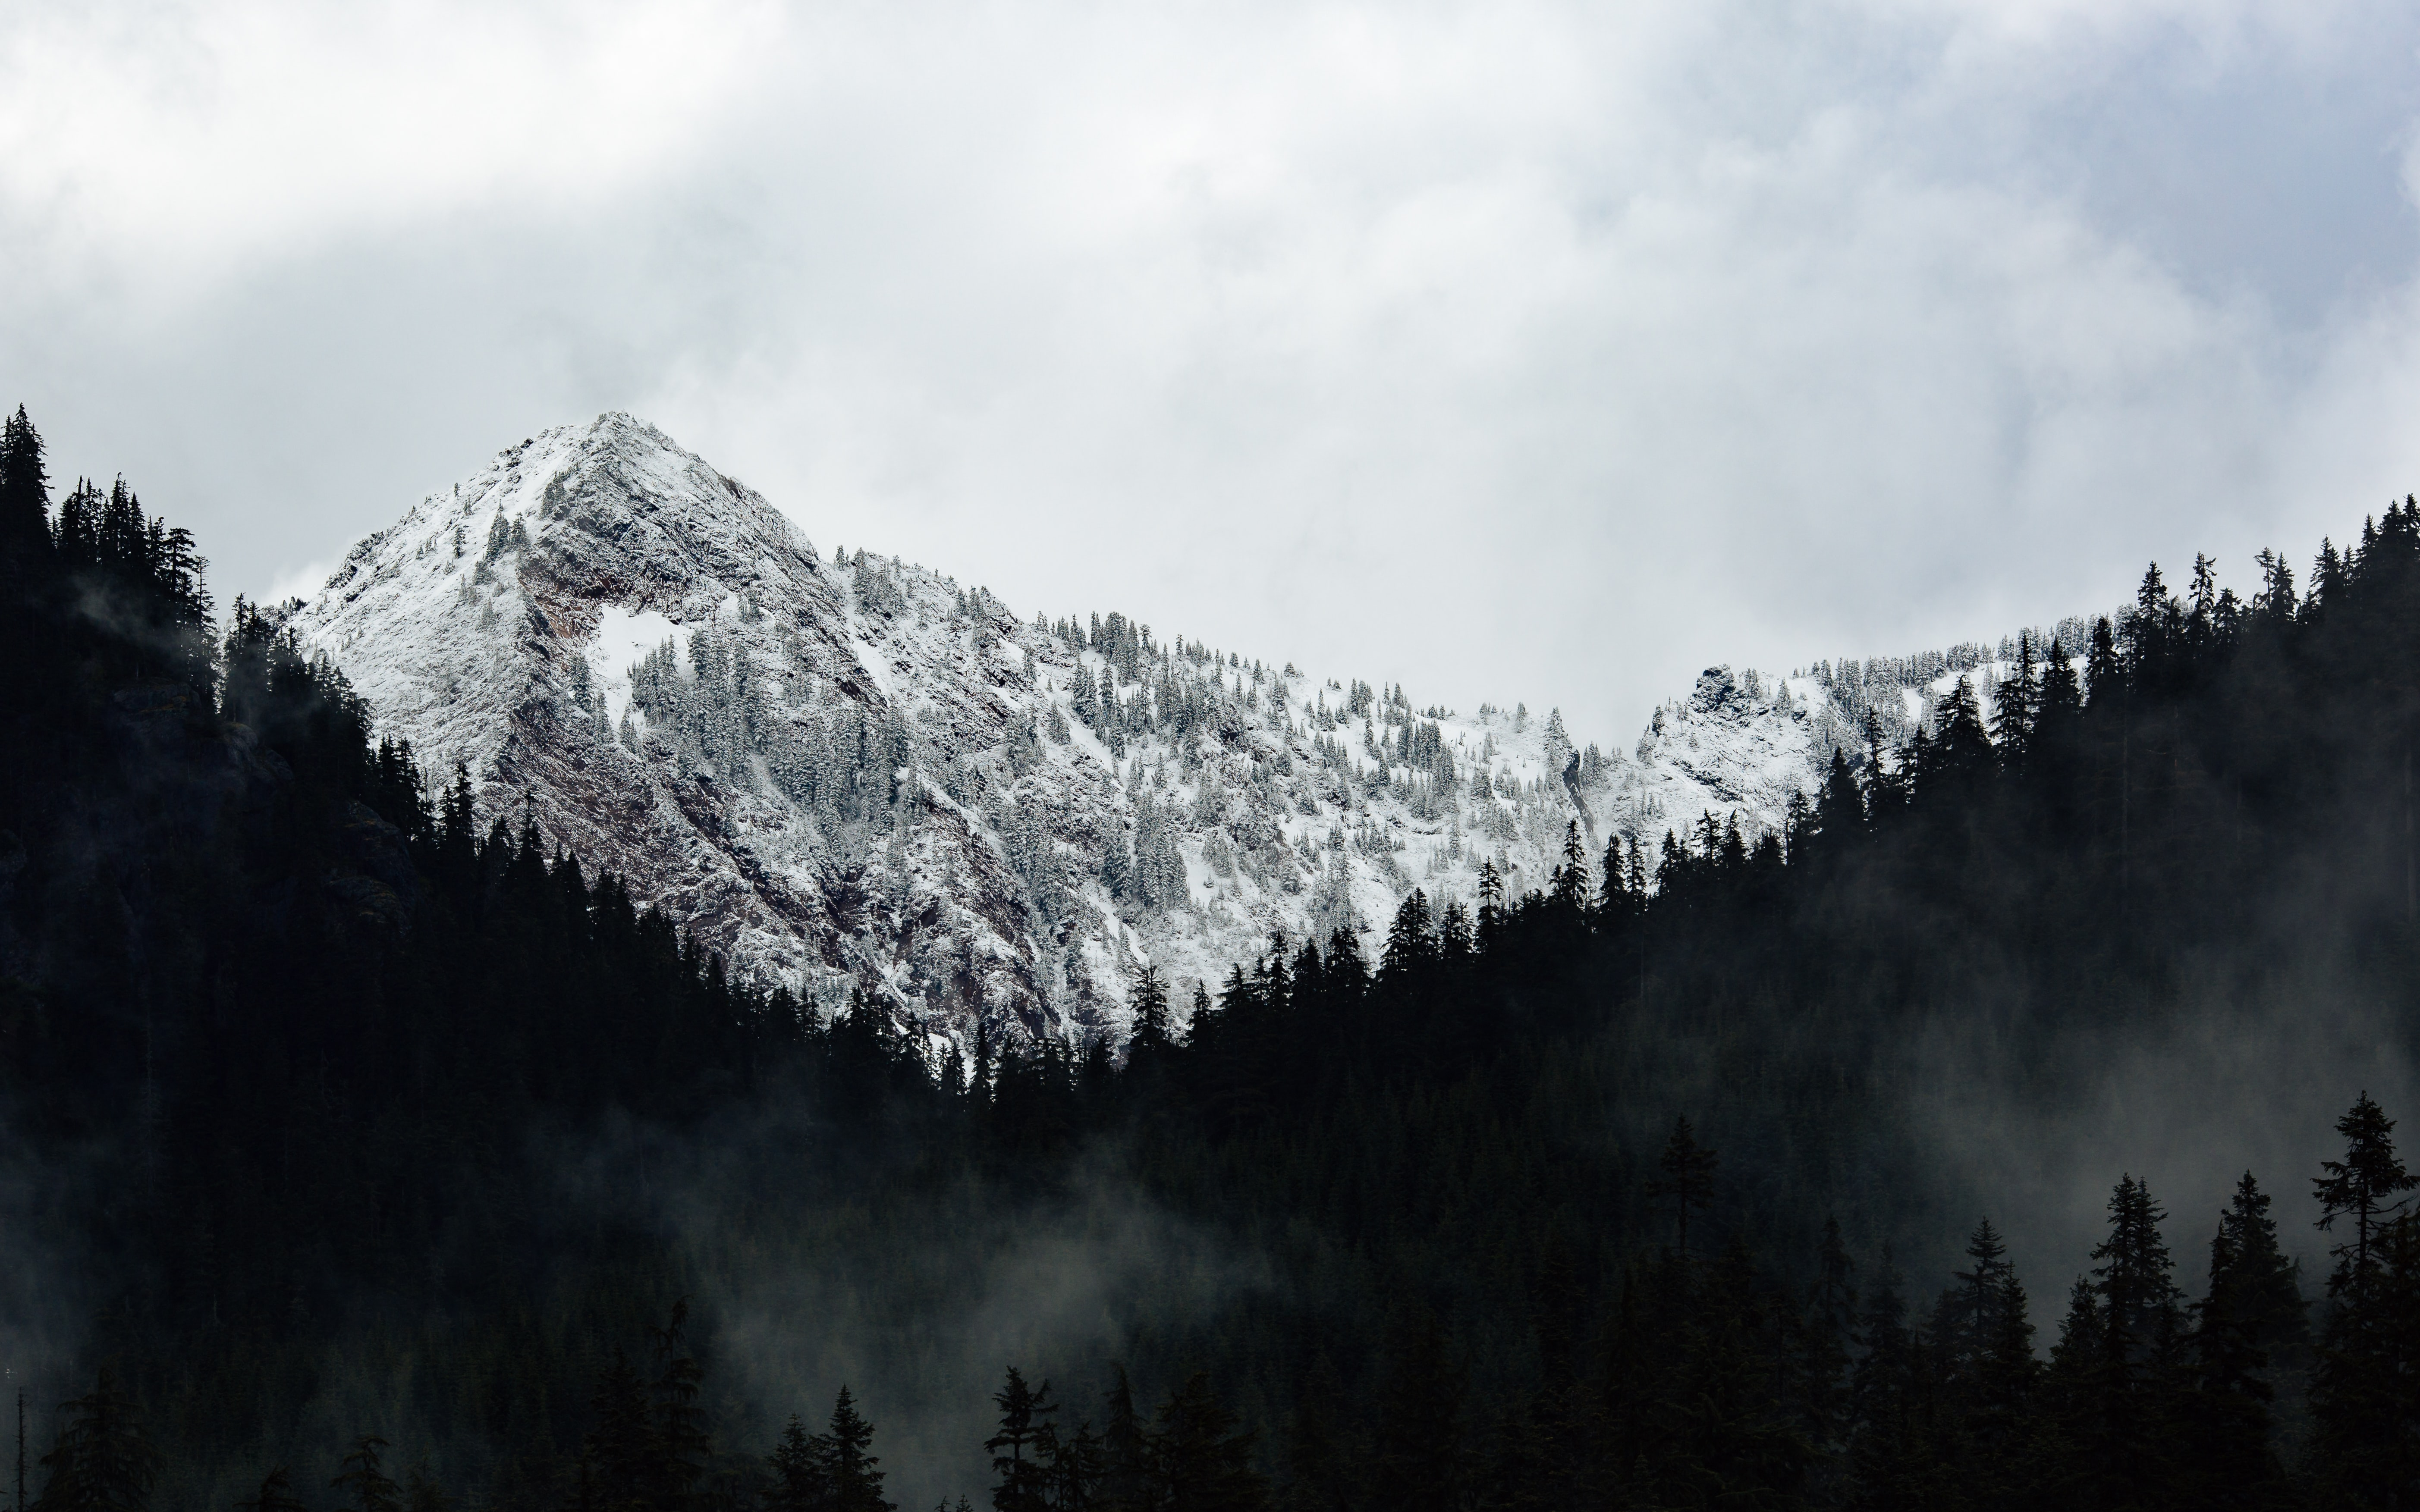 grayscale photography of trees and mountains